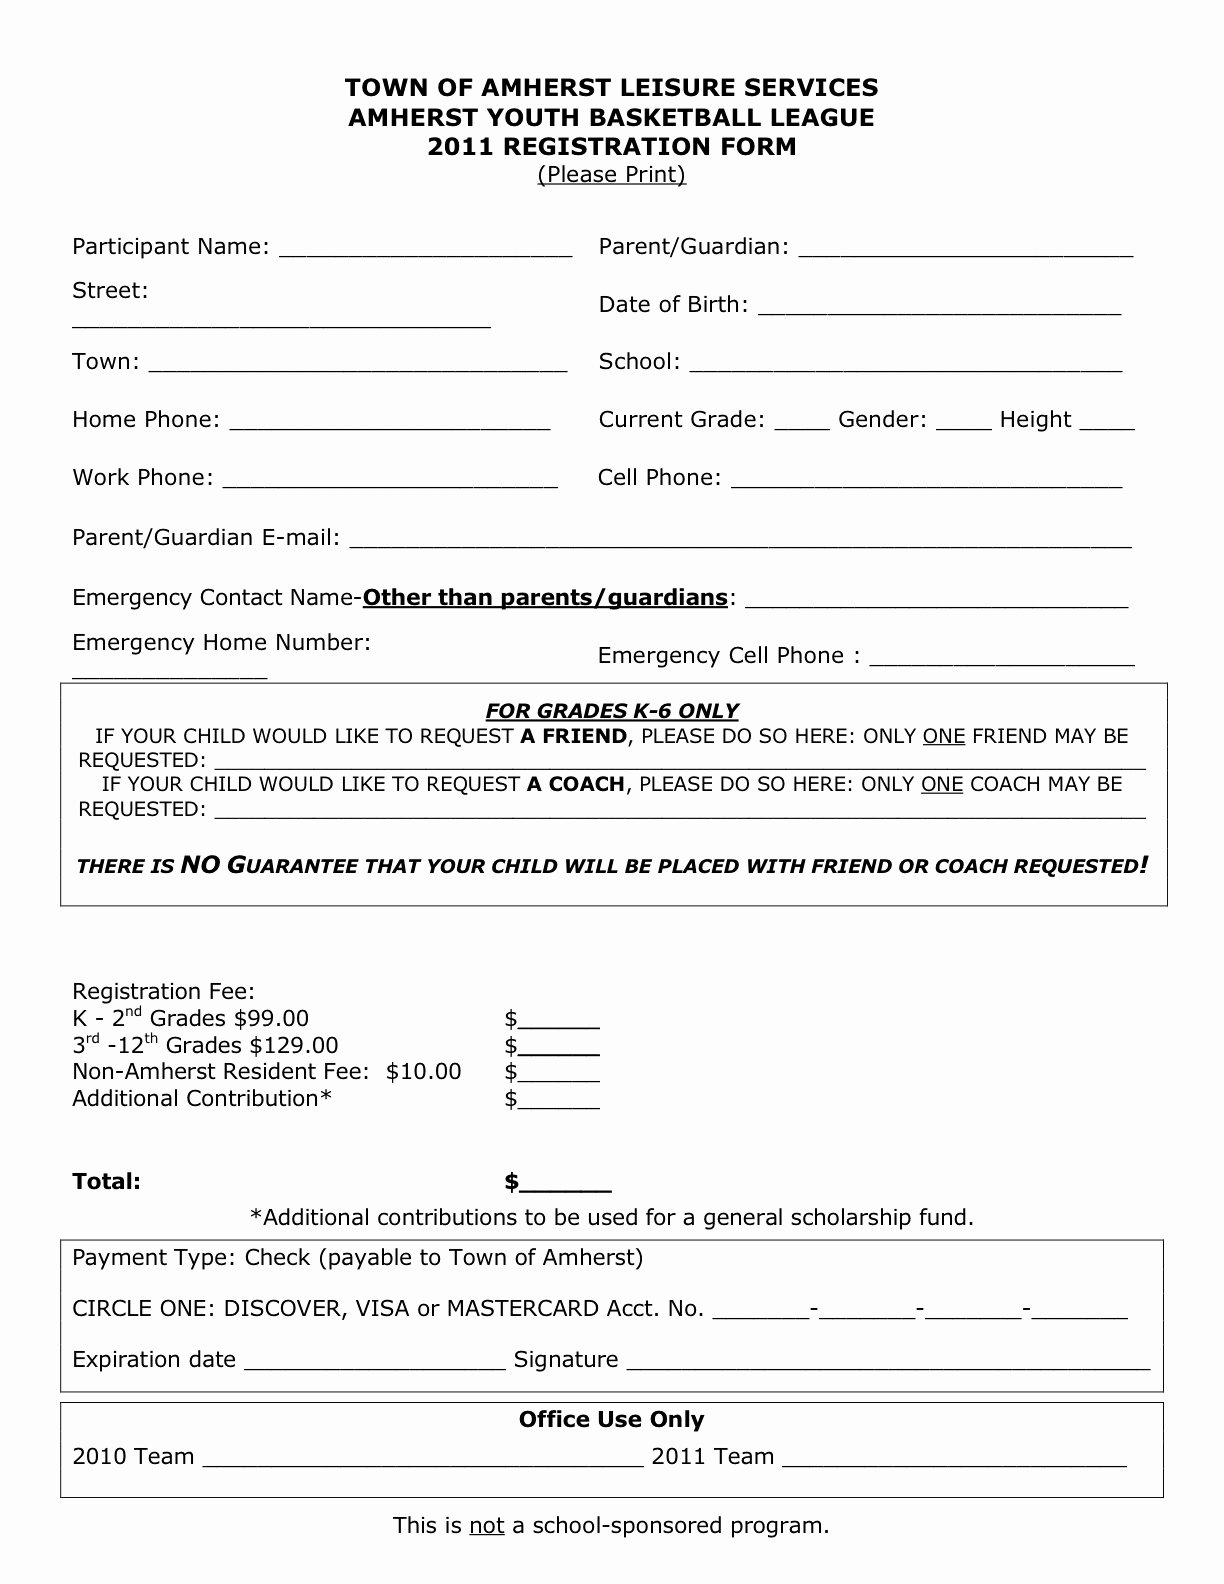 Free Sports Registration form Template Fresh Download Registration form for Sports Template Free